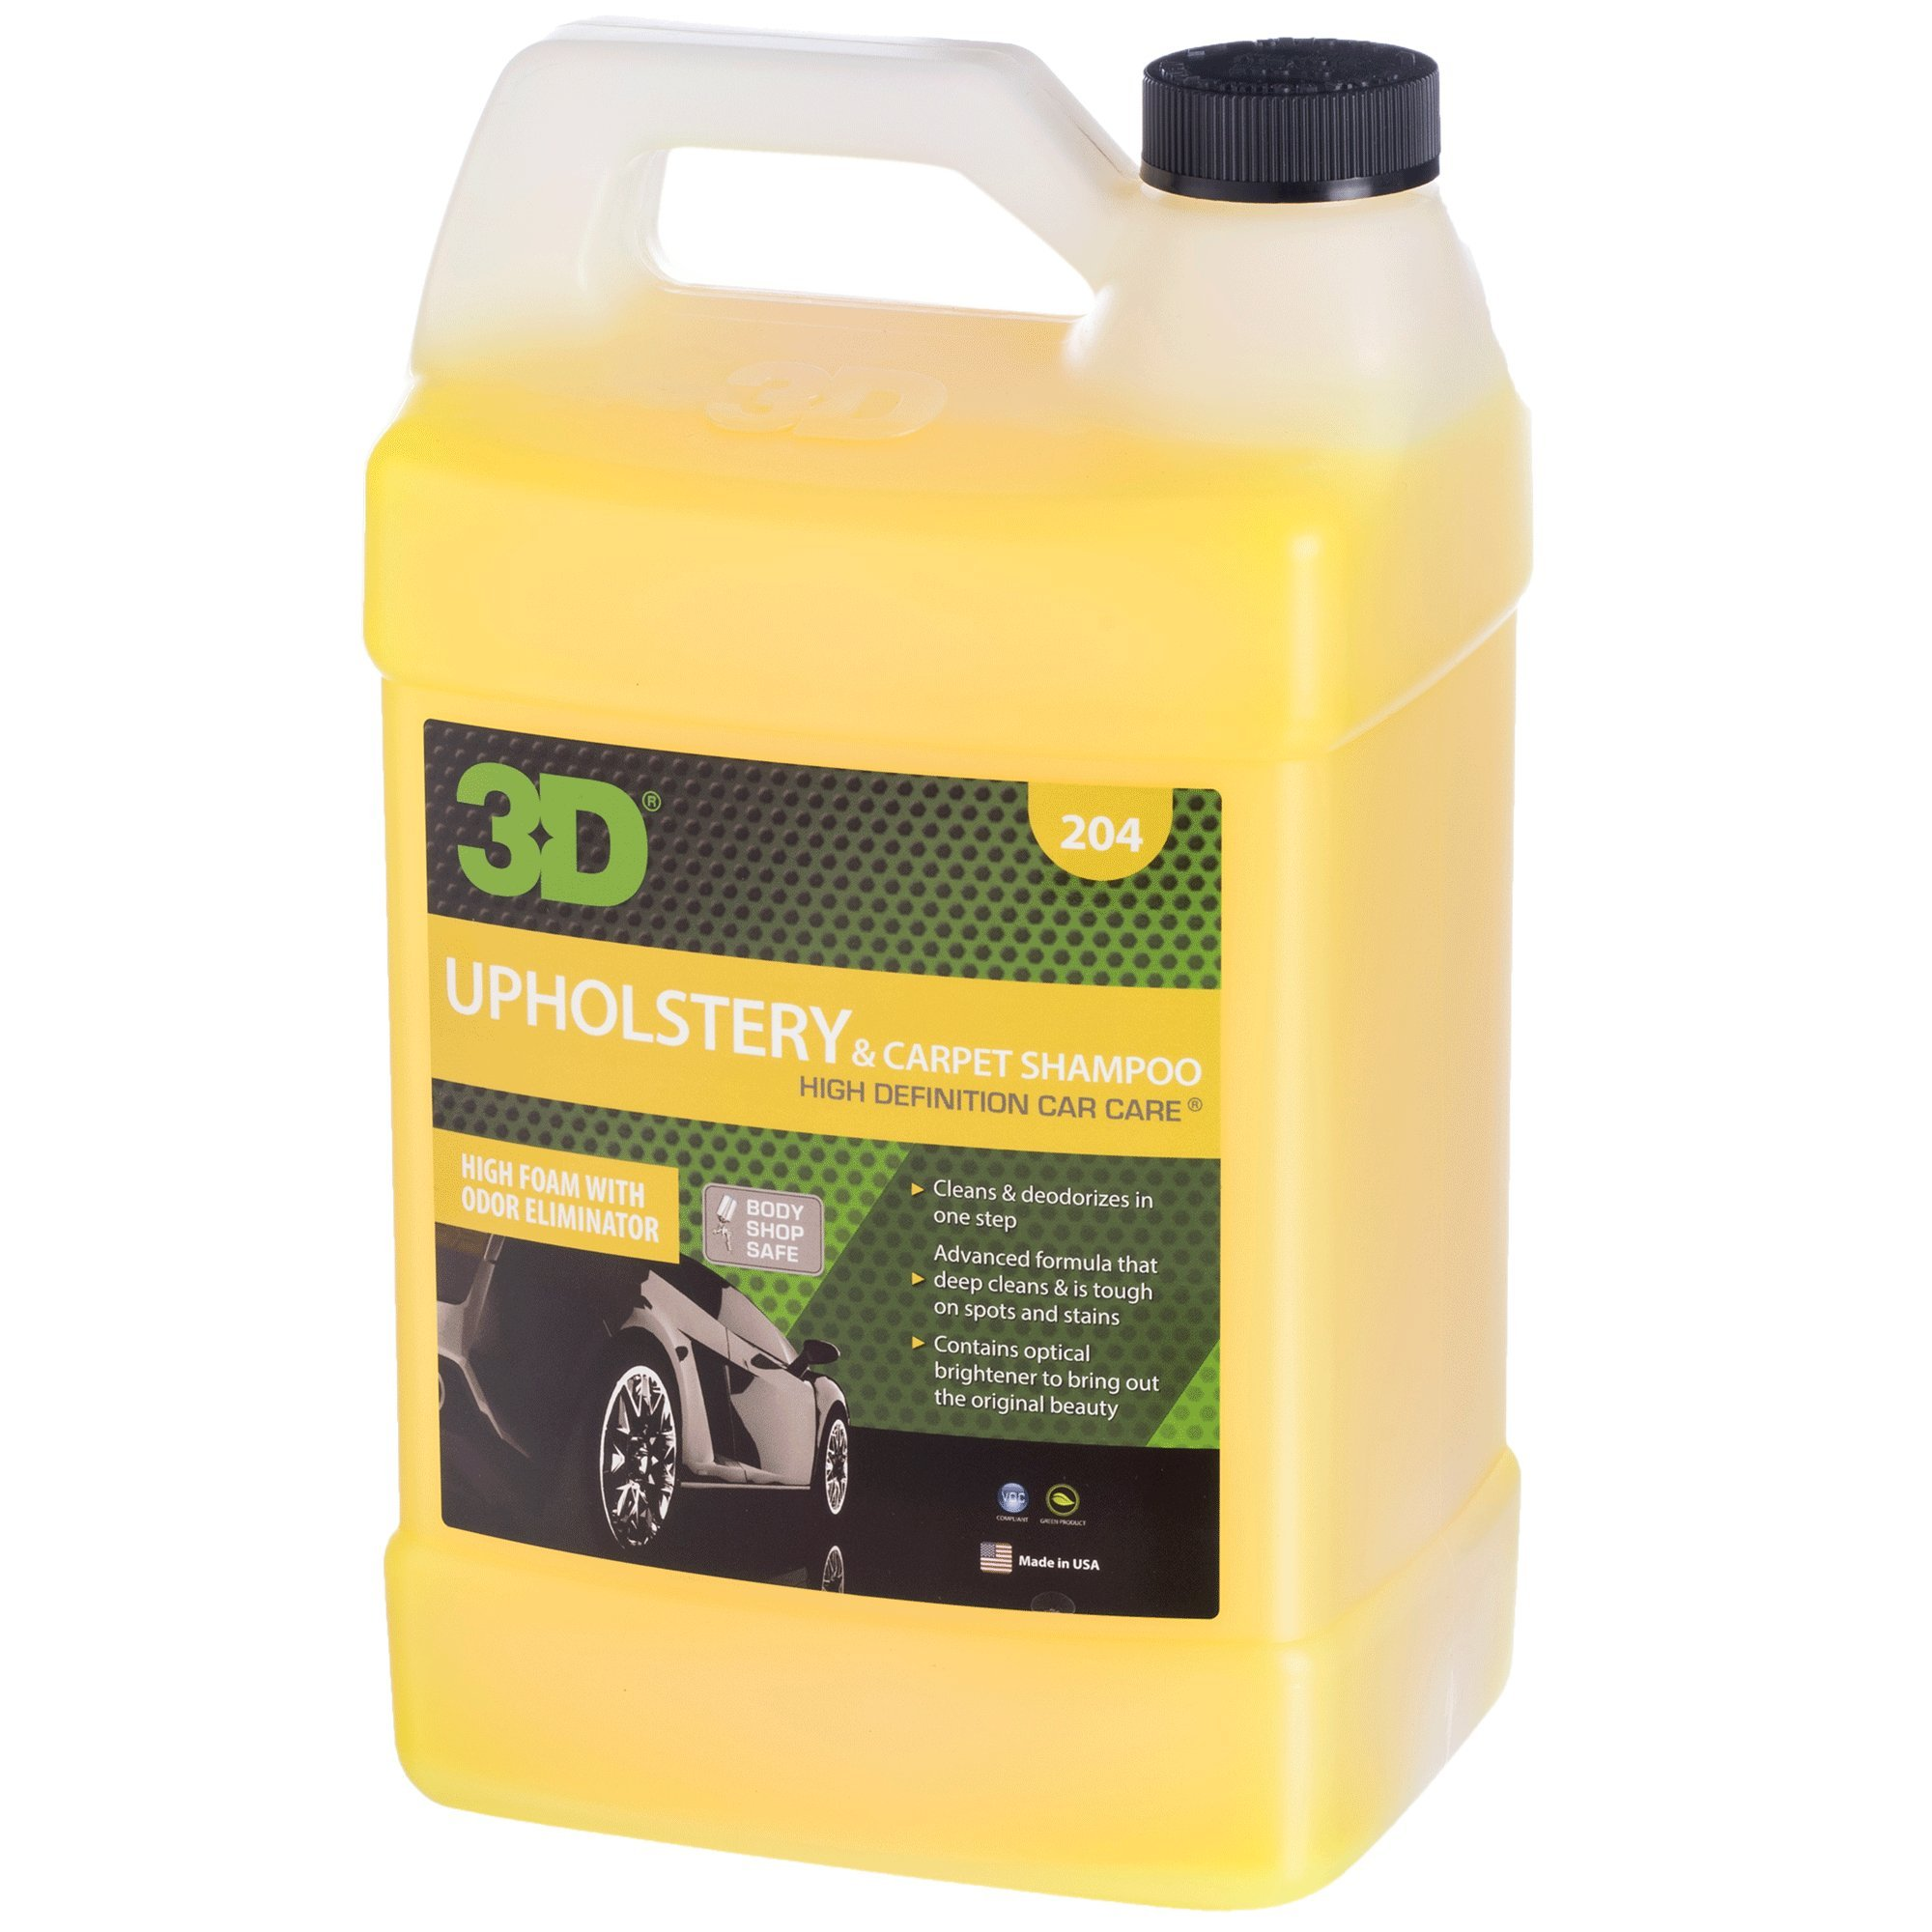 3D Upholstery & Carpet Shampoo - 1 Gallon | High Foam Stain Remover | Clean & Deoderize | Odor Eliminator | Made in USA | All Natural | No Harmful Chemicals